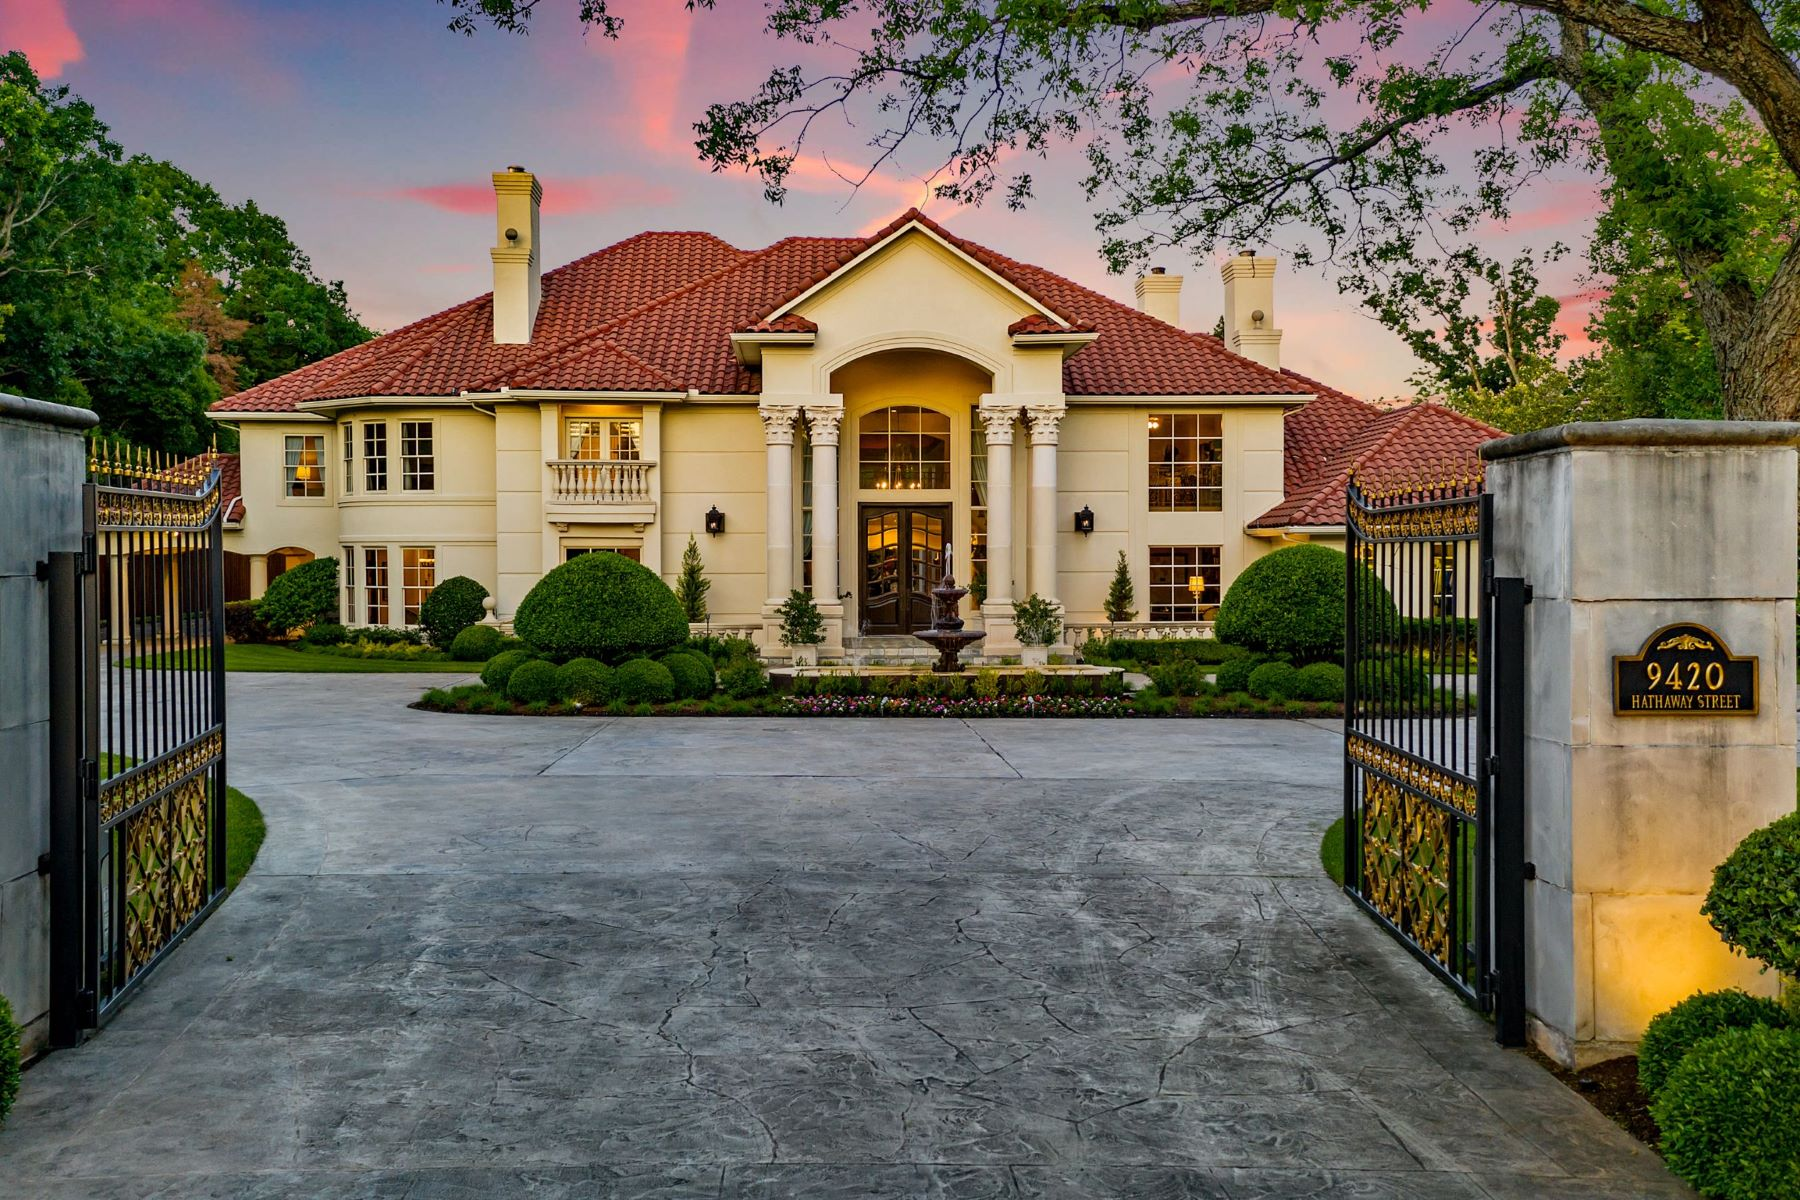 Single Family Homes for Sale at Majestic Preston Hollow estate on 1.35 acres.Expansive lush grounds, 10,255 sf 9420 Hathaway Street Dallas, Texas 75220 United States